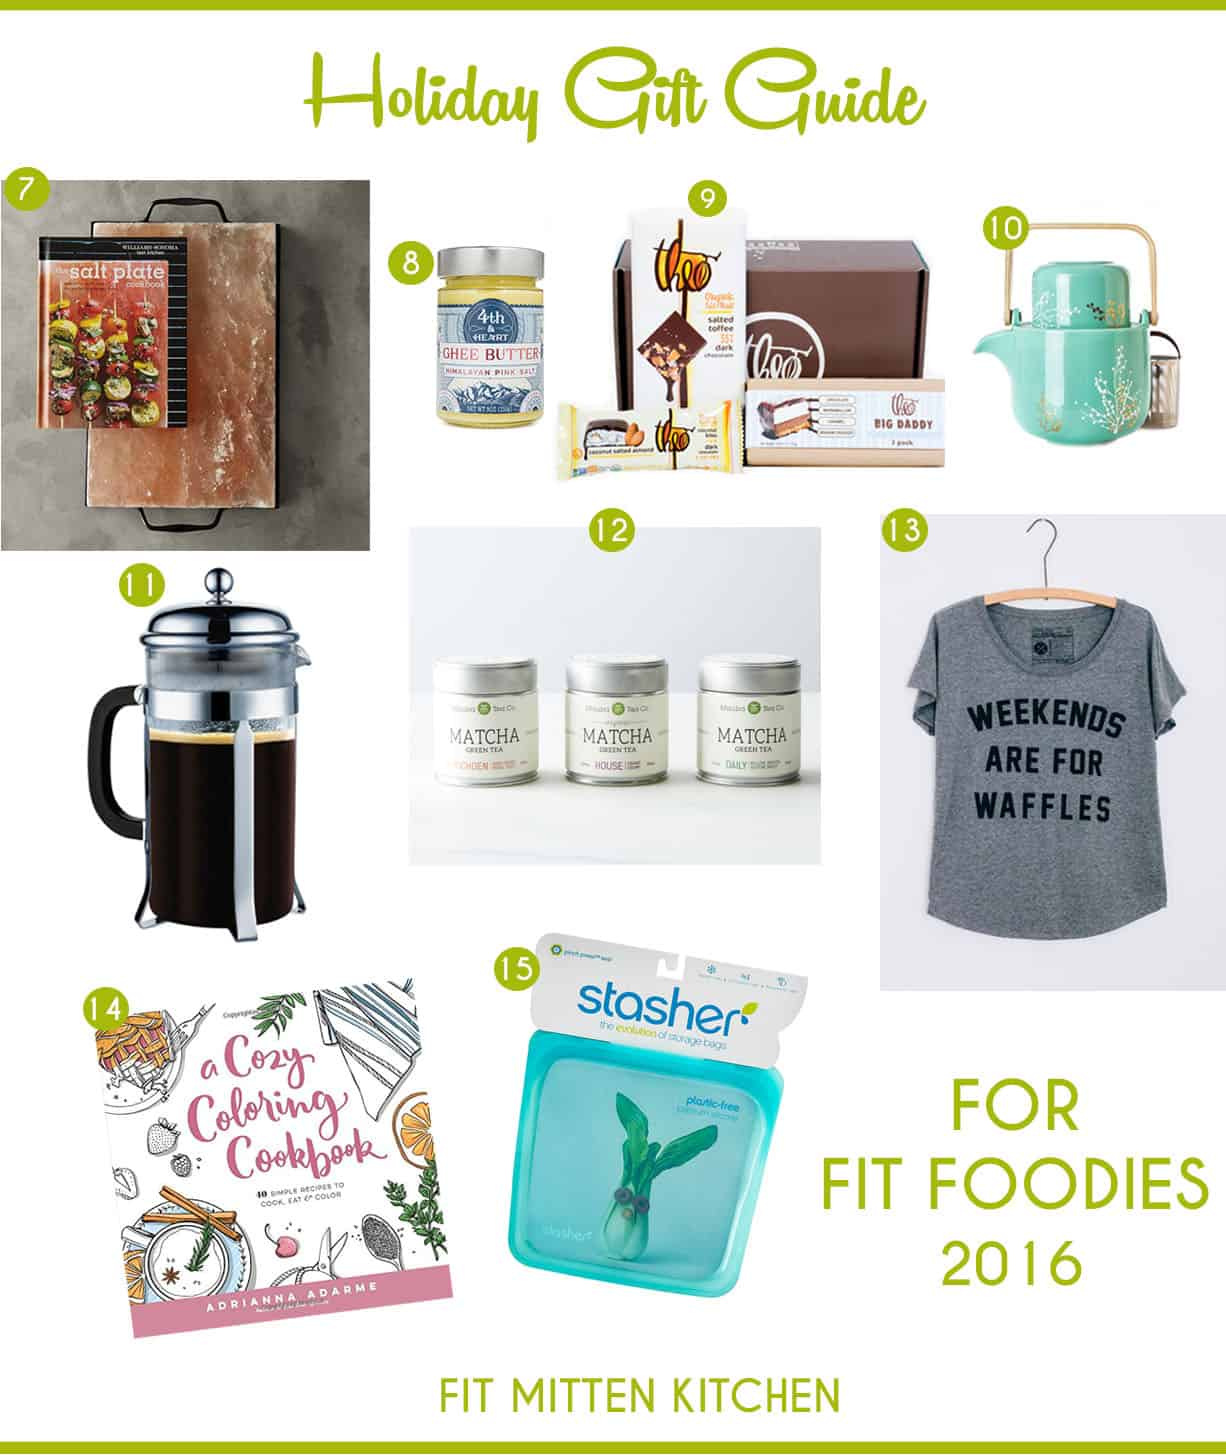 The Holiday Gift Guide for Fit Foodies fit mitten kitchen pinterest image french press cookbook stasher bag